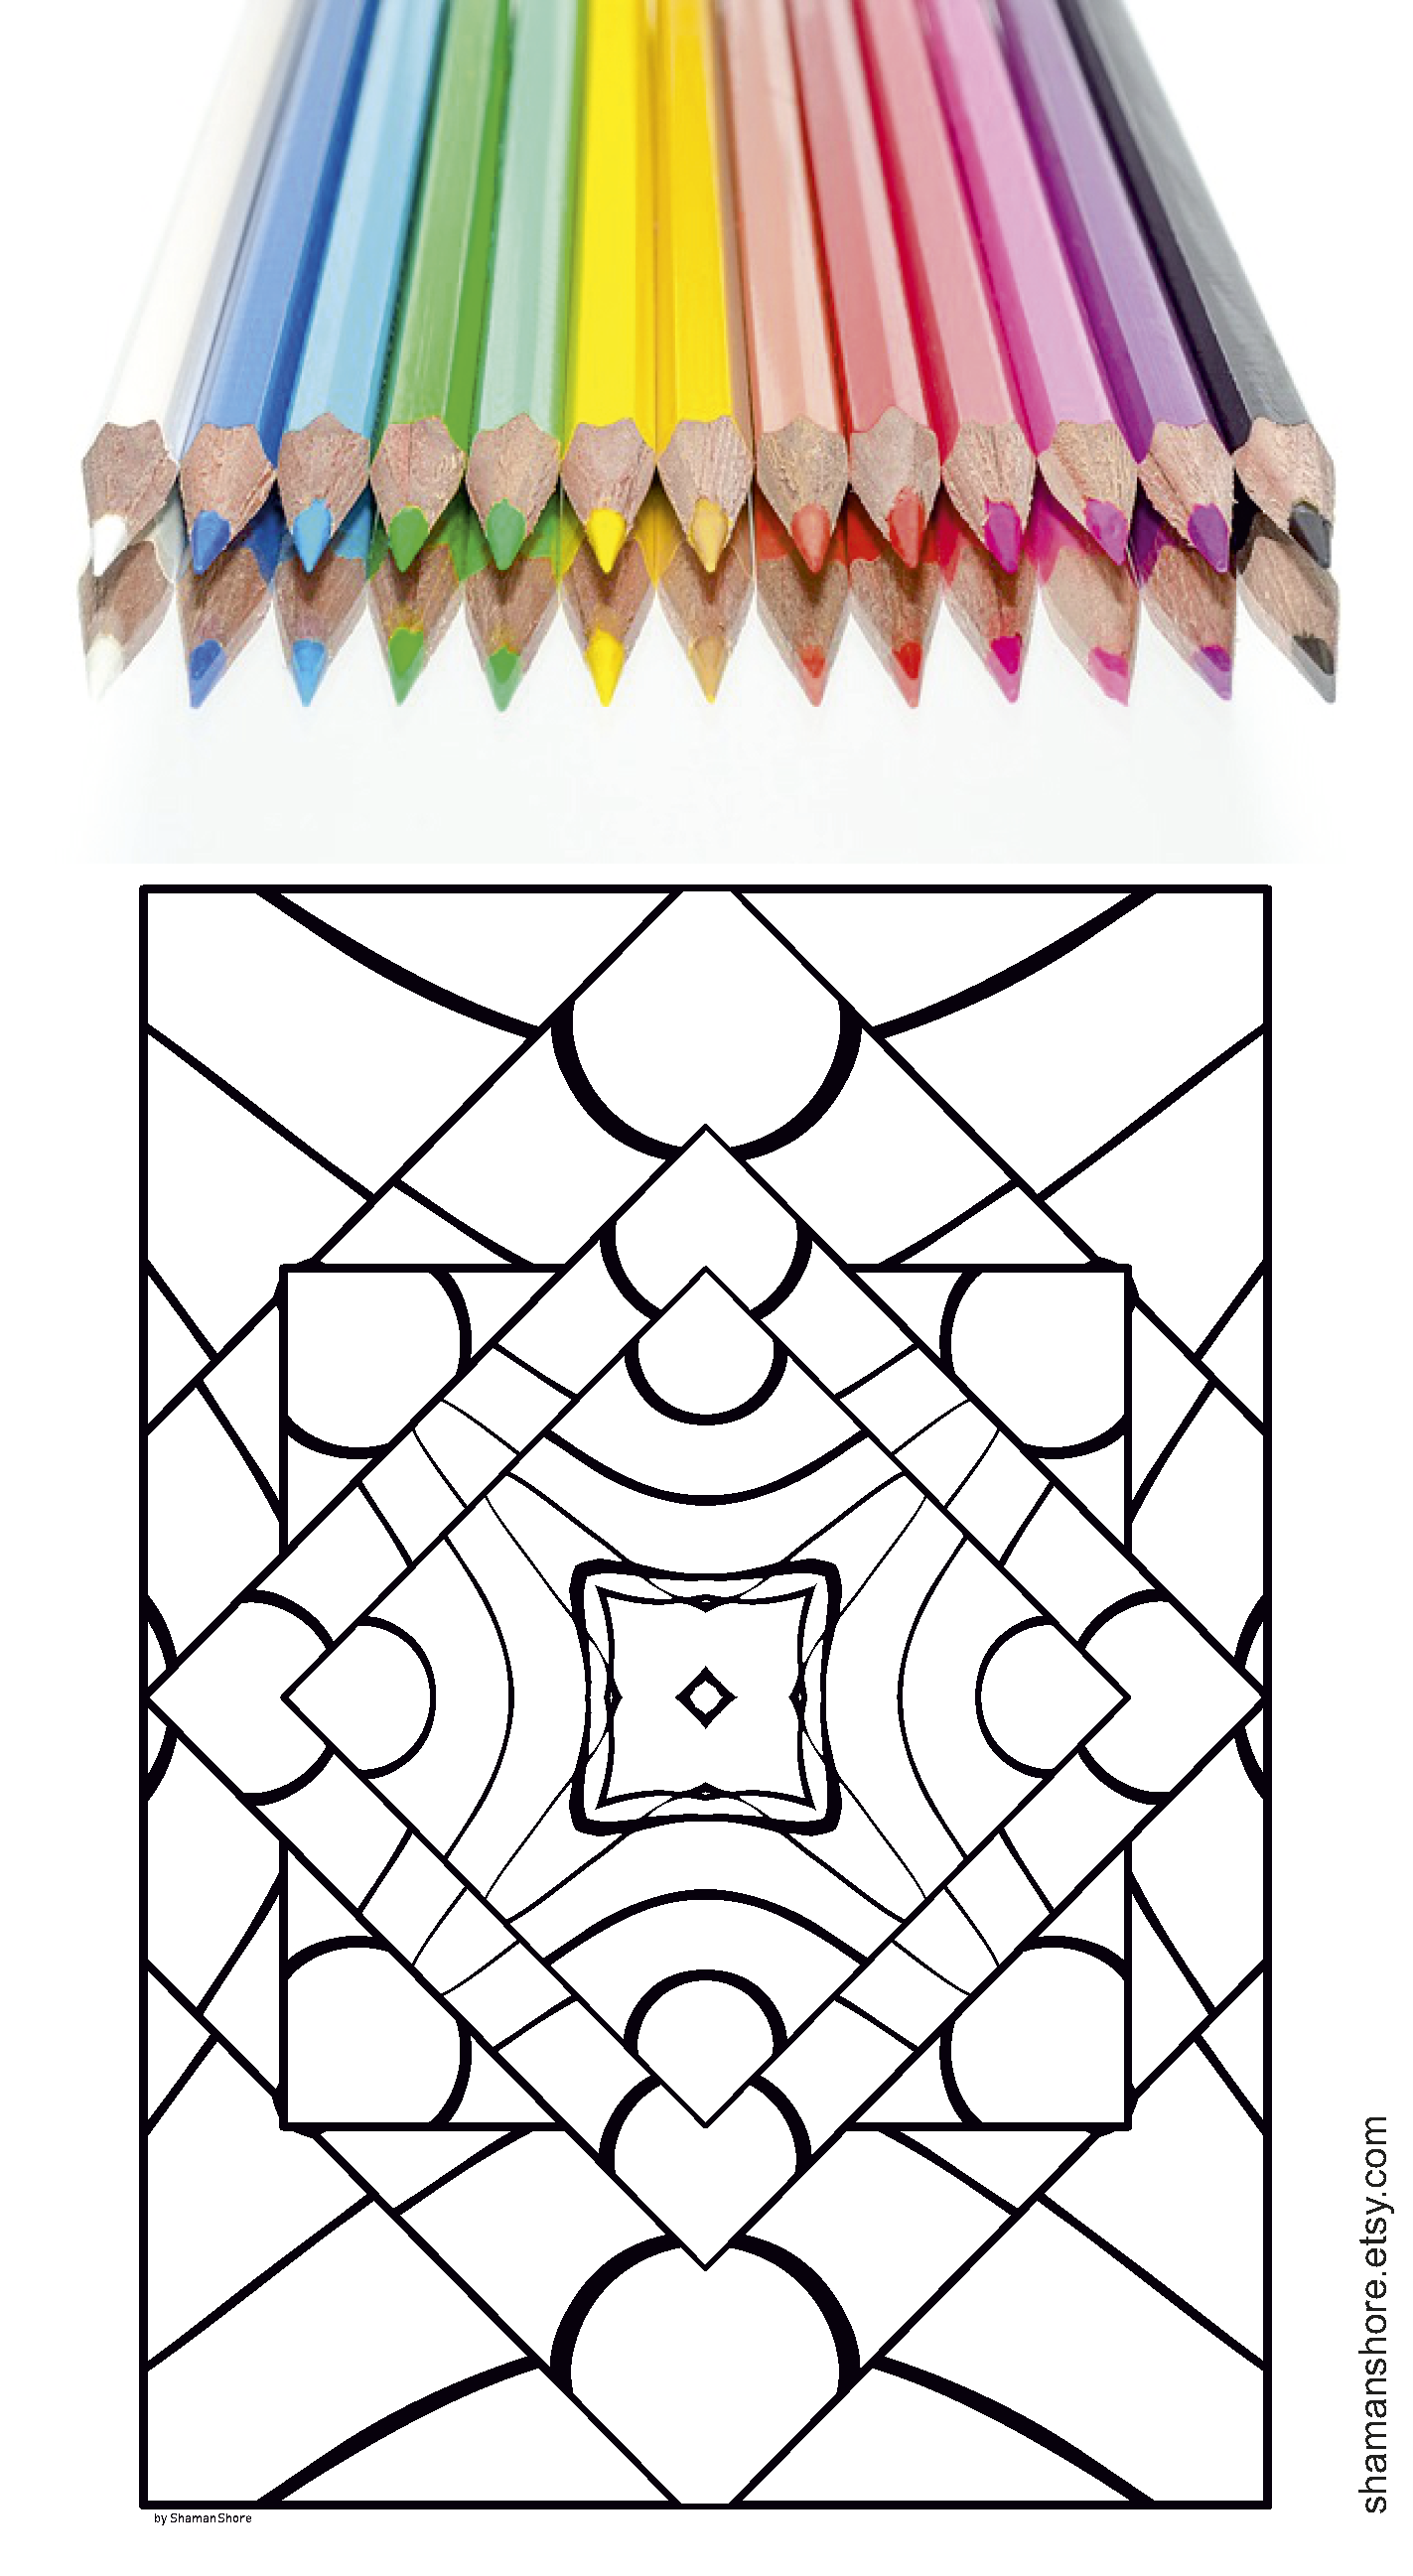 Pdf Adult Coloring Book, 20 Abstract Kaleidoscope Coloring Pages for ...